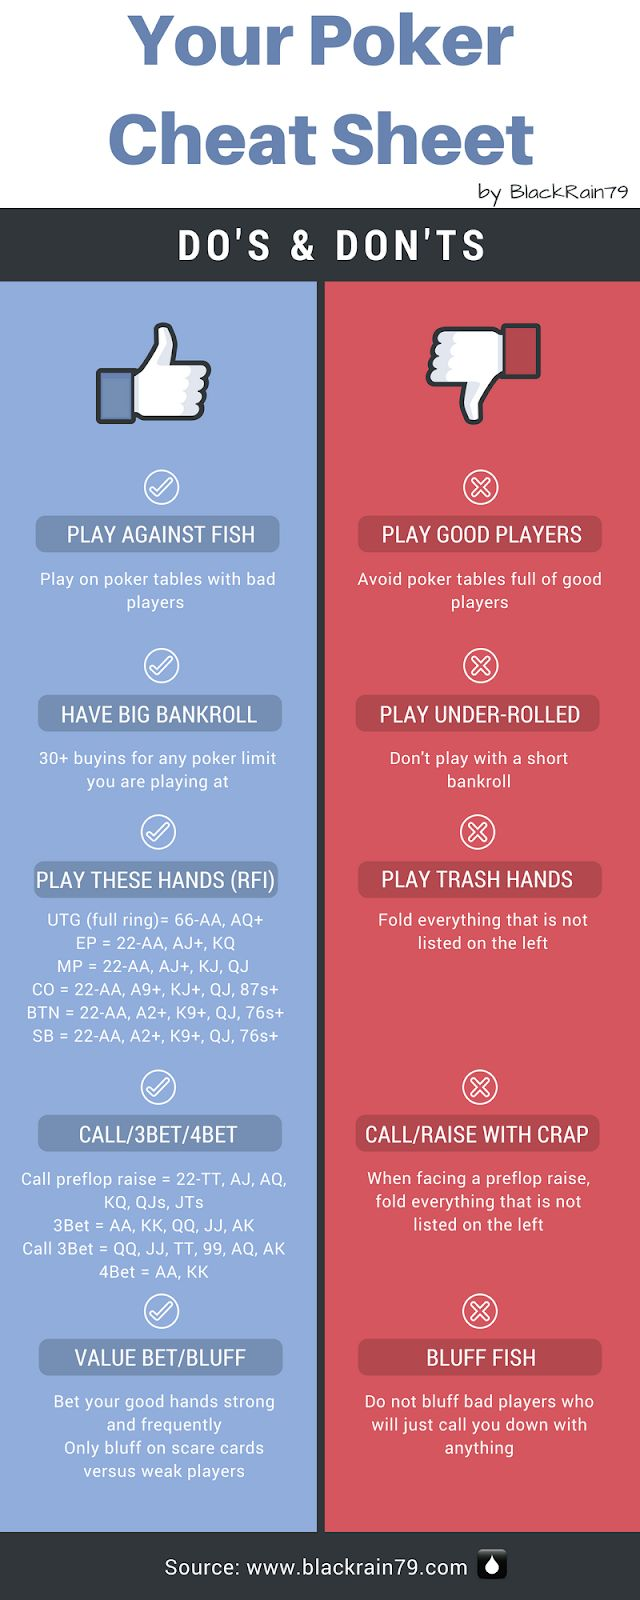 outs in poker cheat sheet